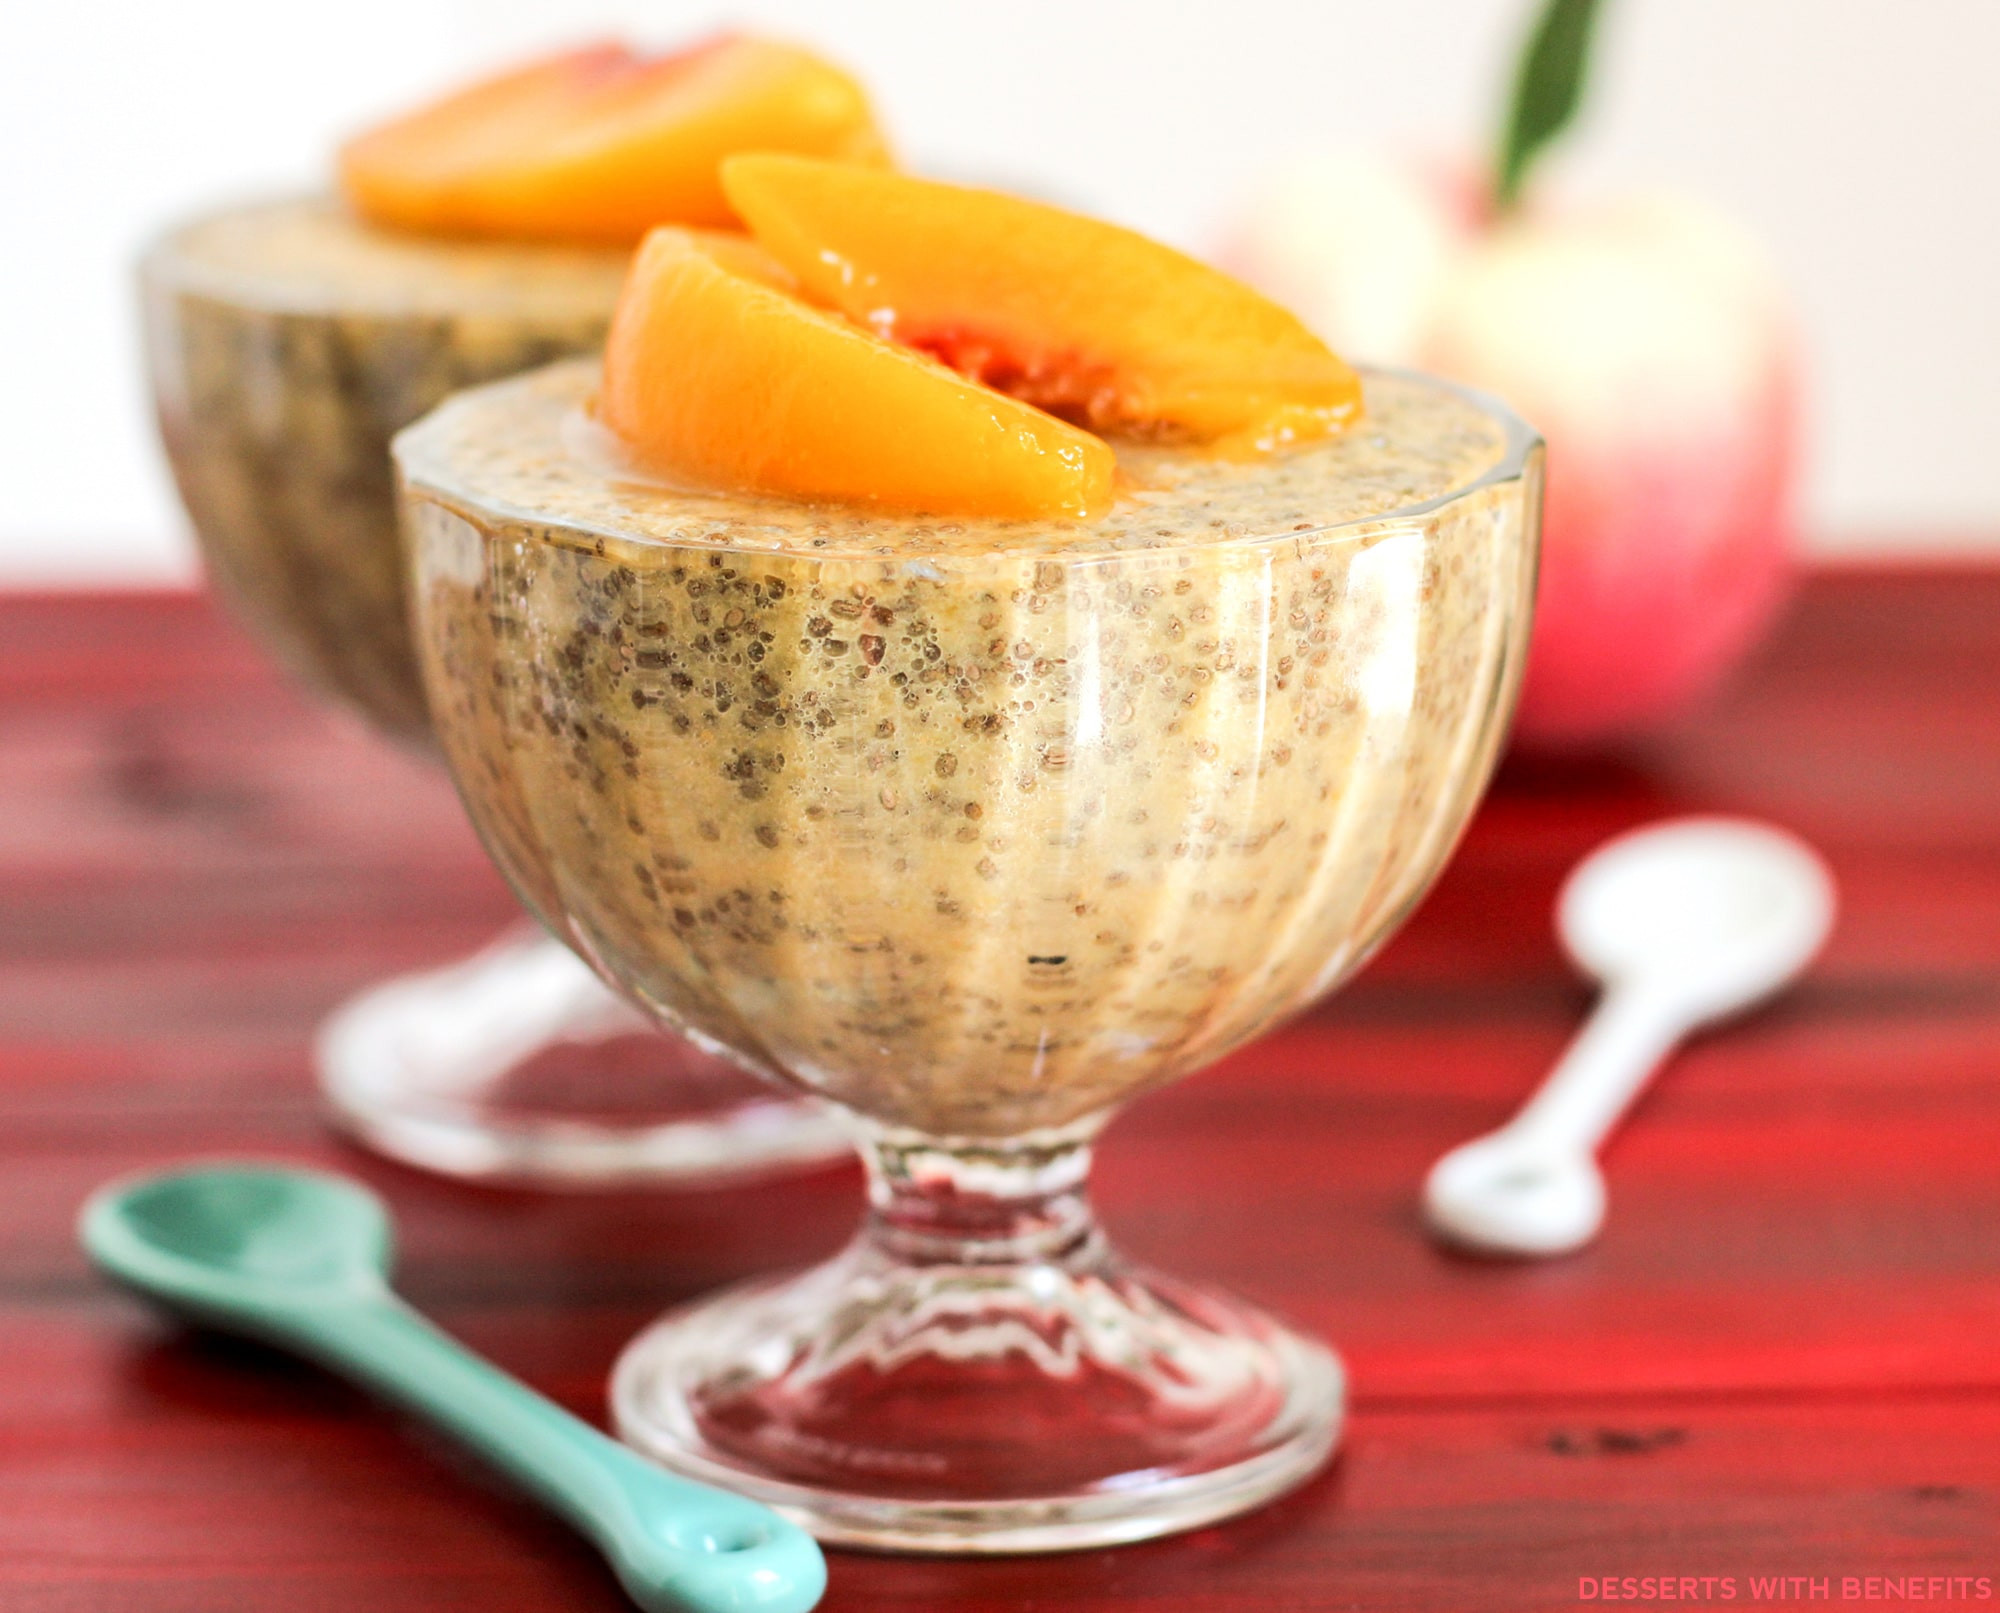 Healthy Peach Desserts  Healthy Ginger Peach Chia Seed Pudding Recipe